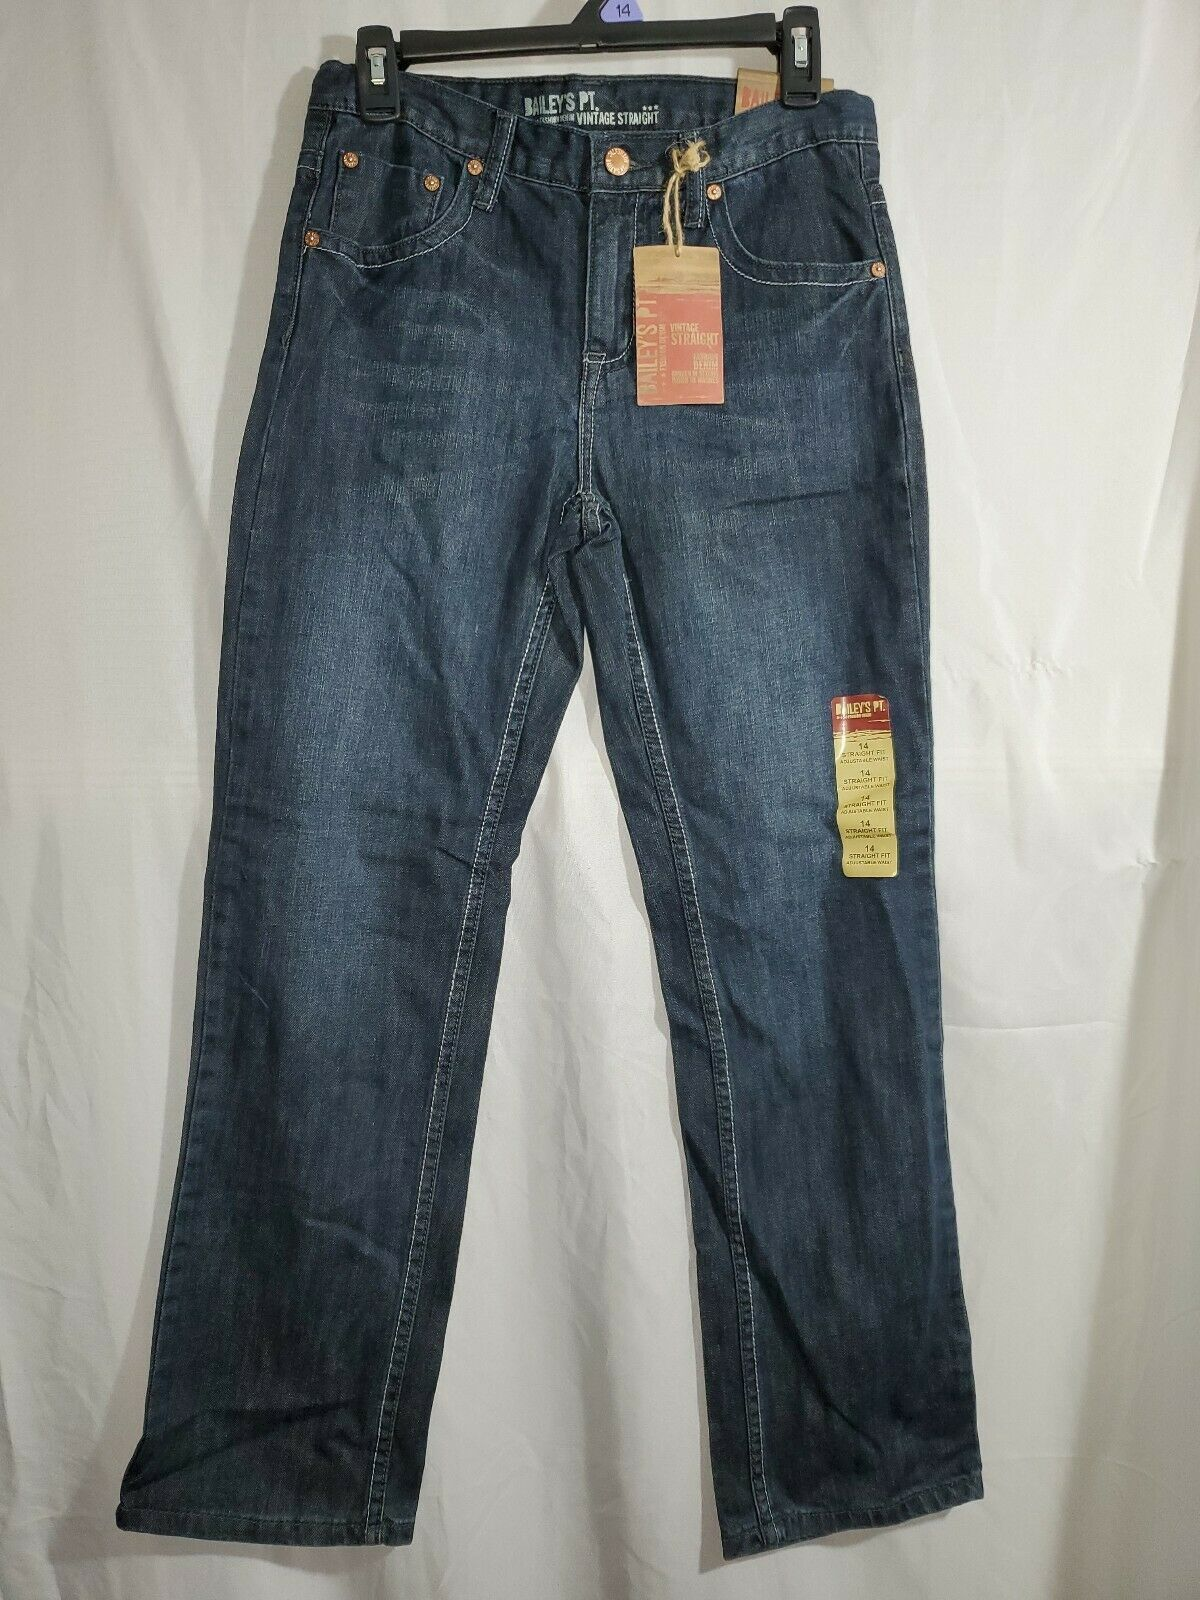 Primary image for Bailey's PT Boys Denim Jeans Size 14 casual pants straight fit medium wash (25g)